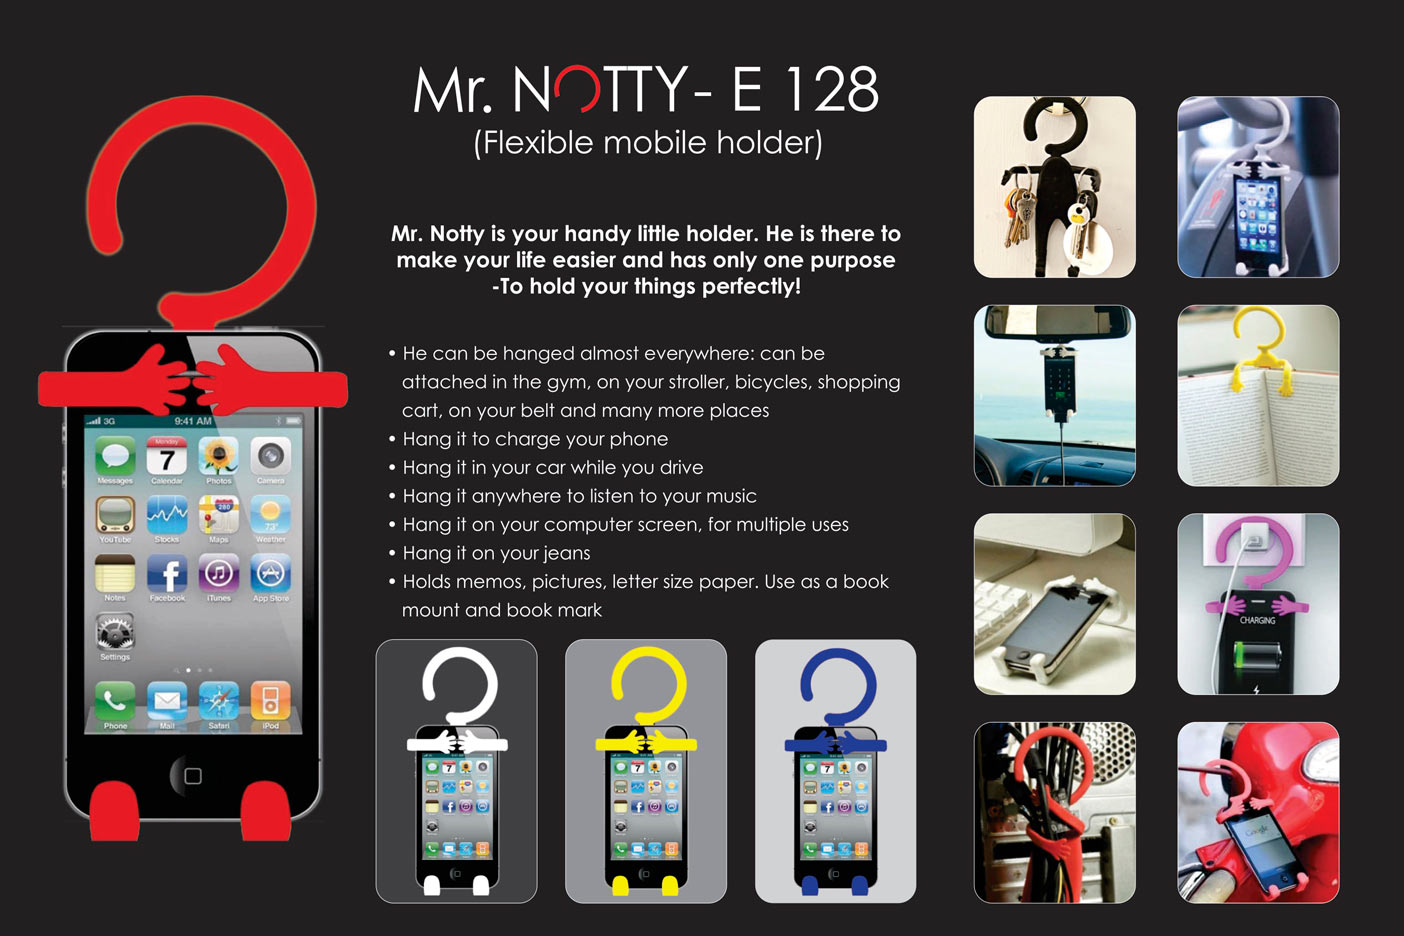 E128 - Mr. Notty: Flexible mobile holder (multipurpose)